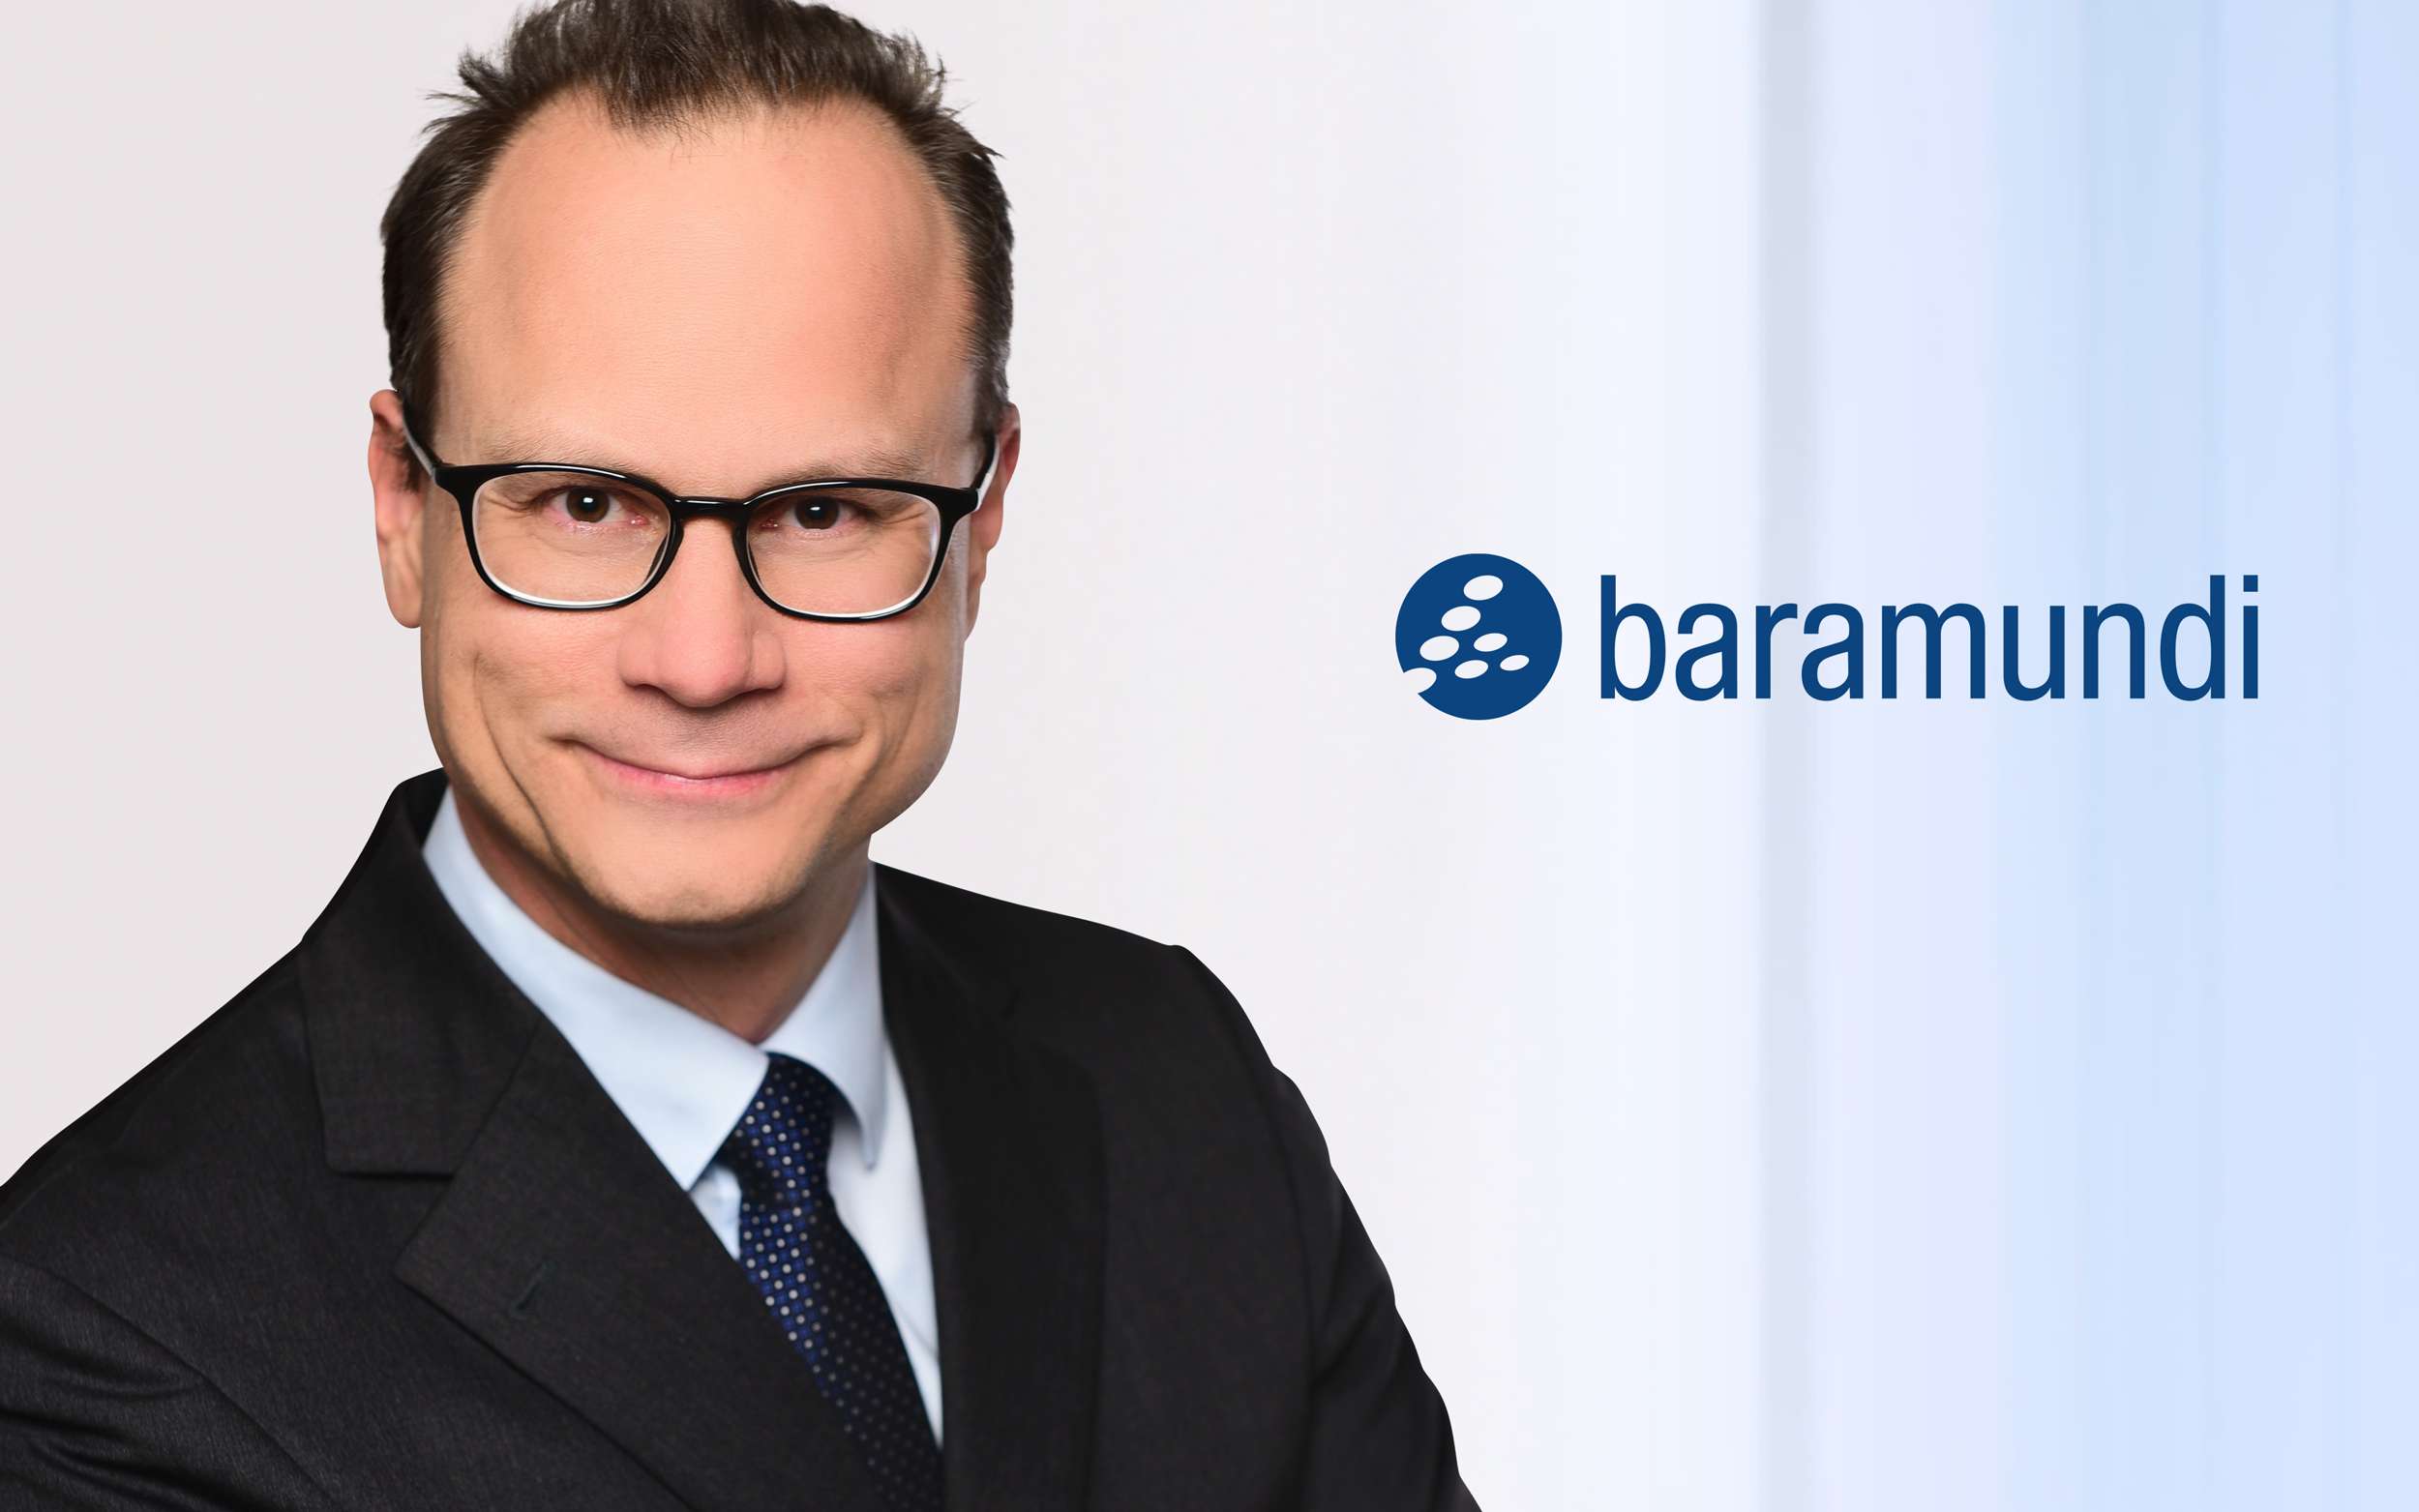 Dr. Lars Lippert - baramundi software AG Executive Board Member